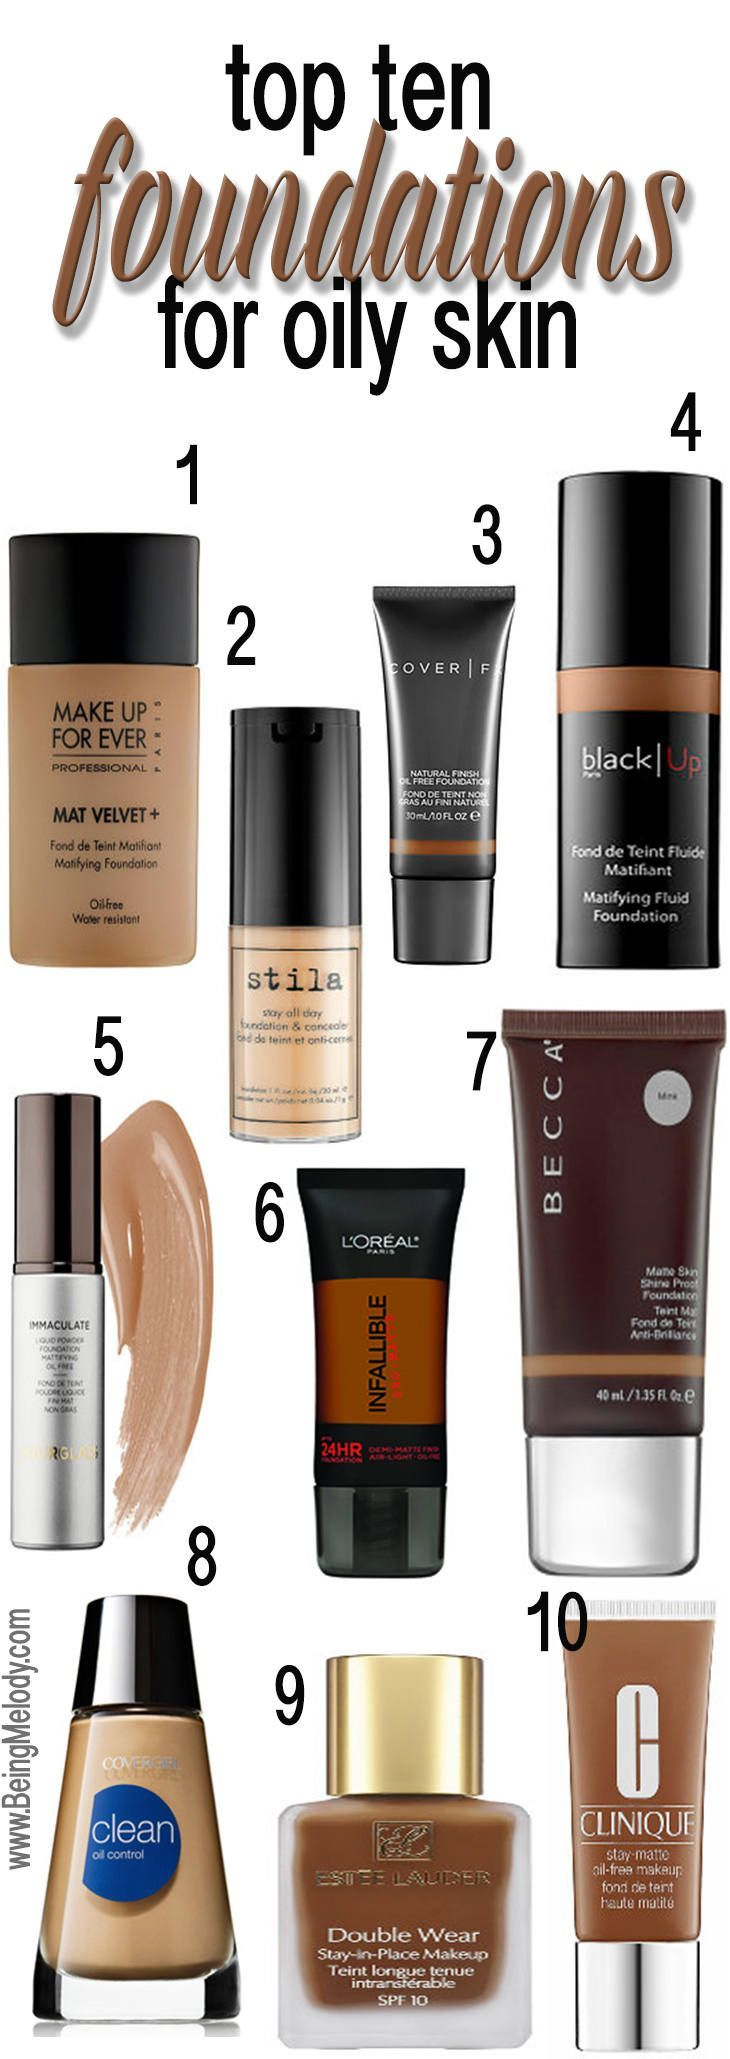 www.beingmelody.com | Top Ten Foundations for Oily Skin | http://www.beingmelody.com